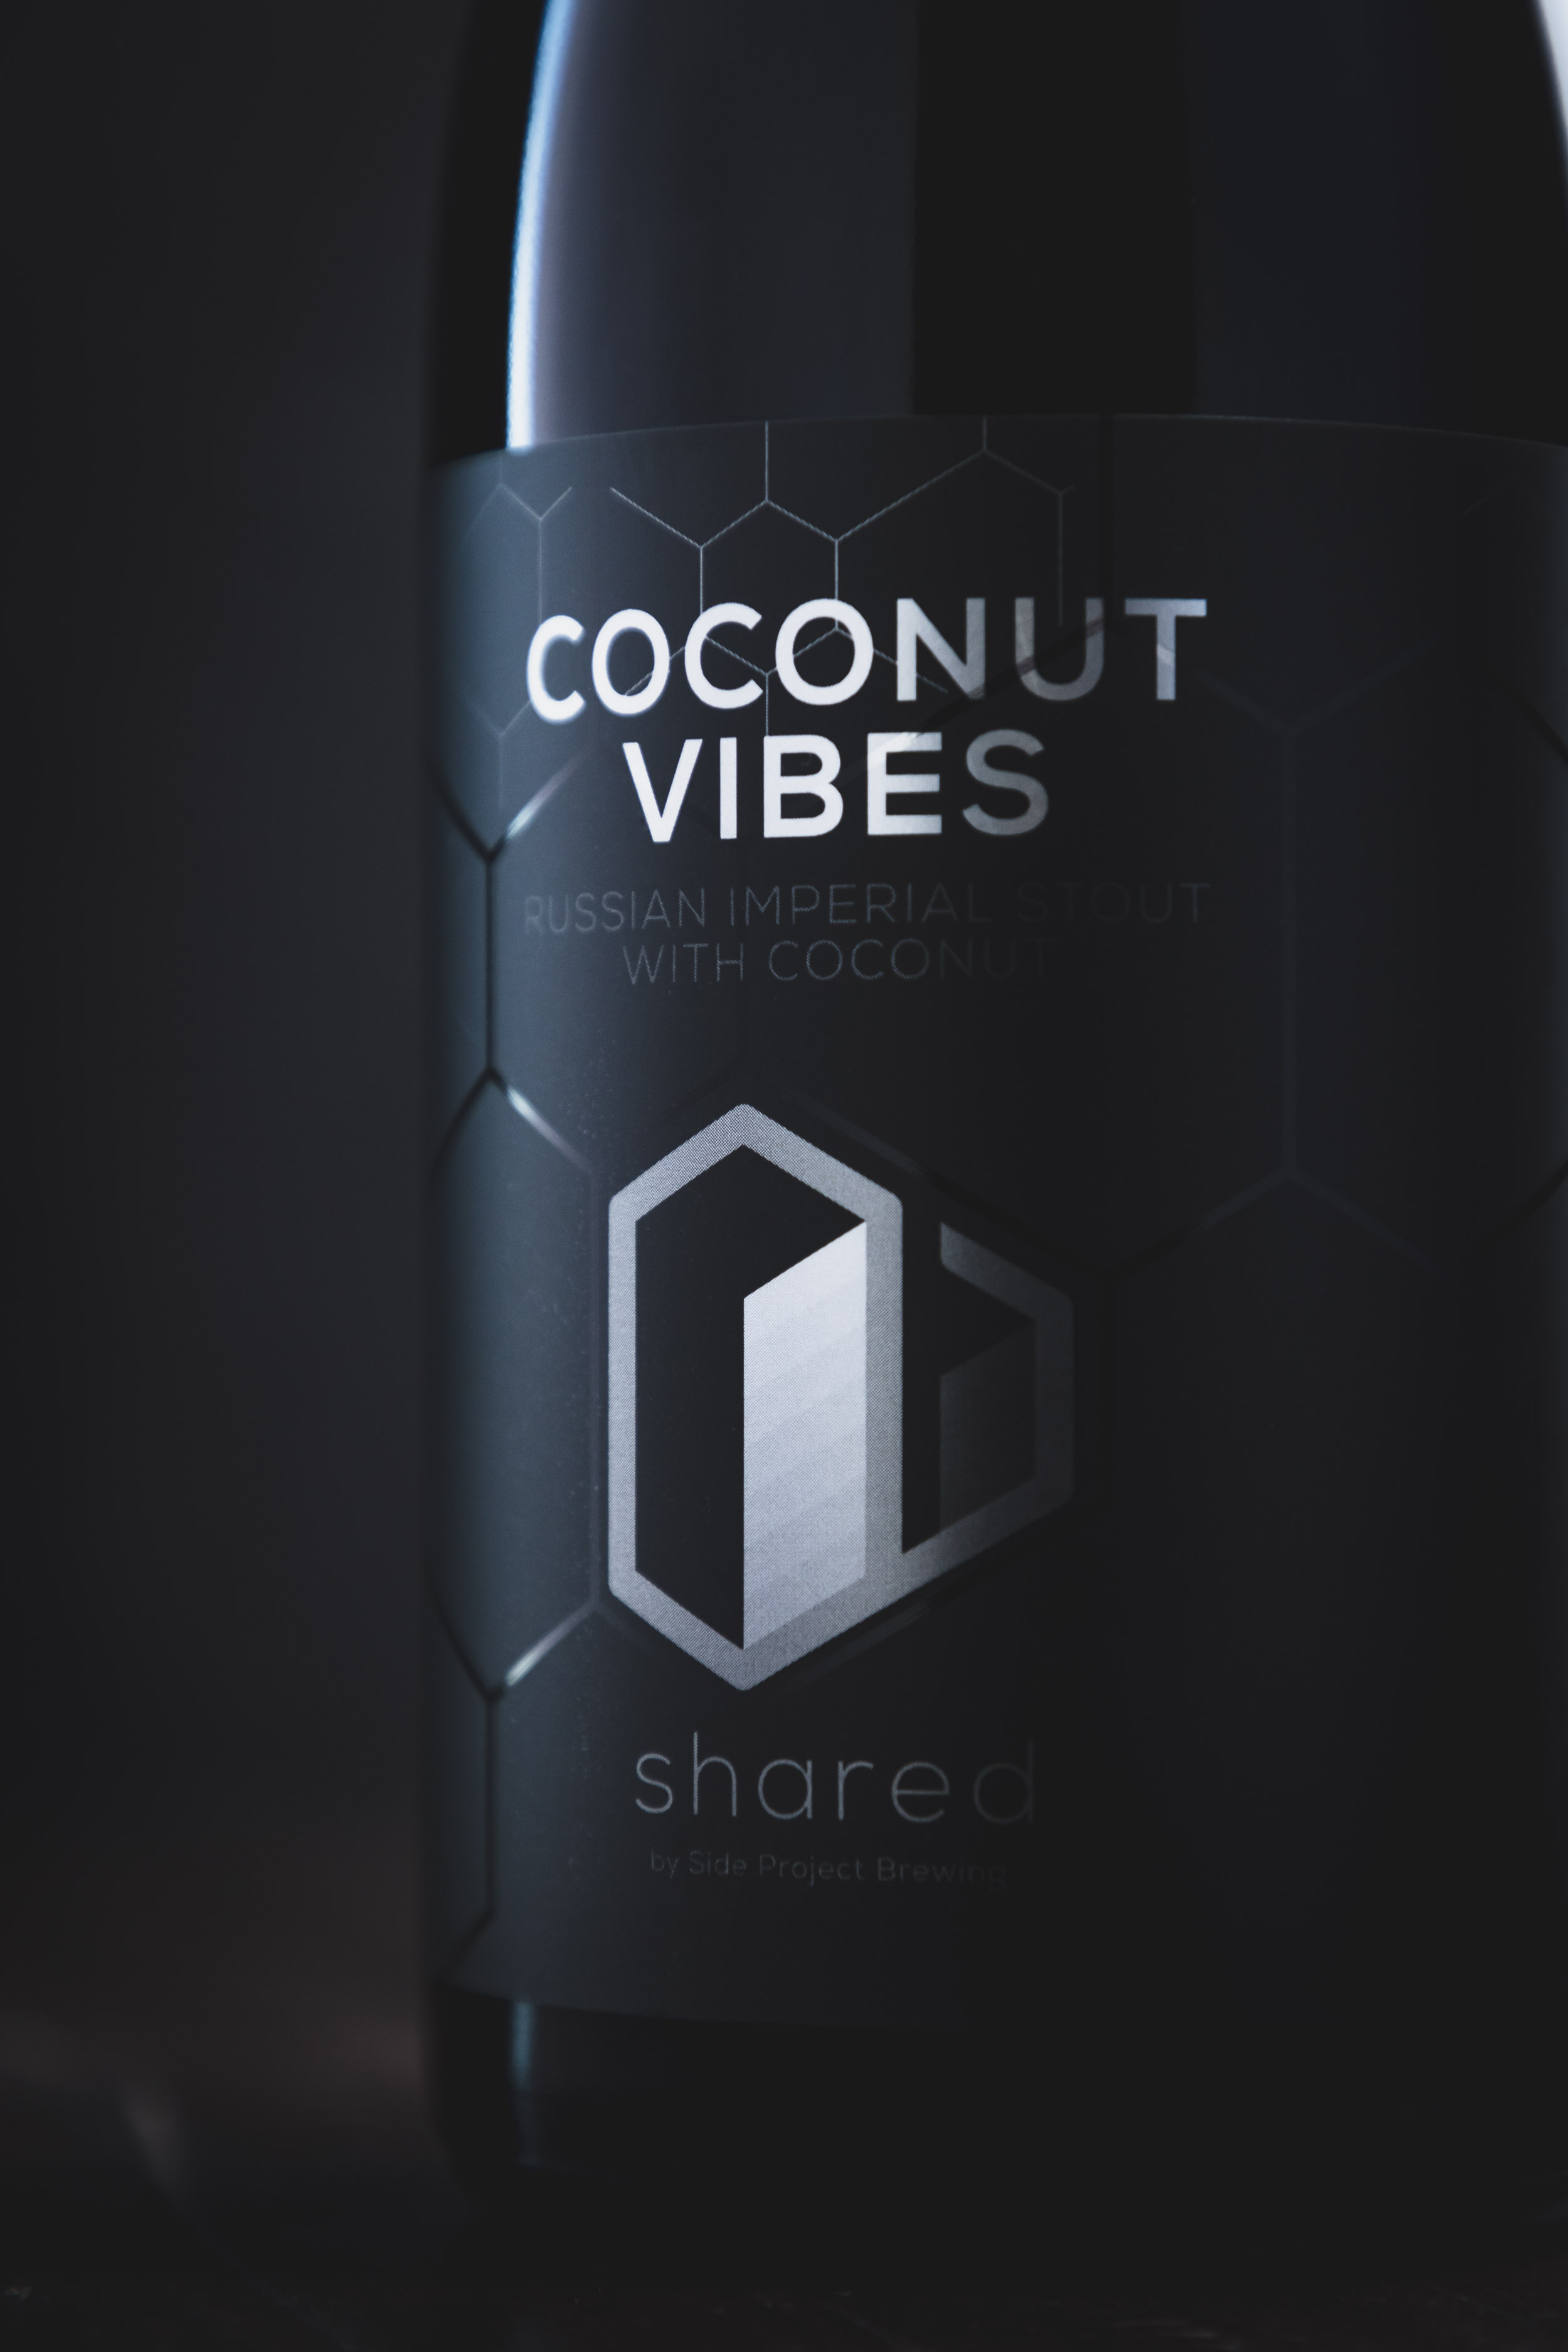 Shared Coconut Vibes